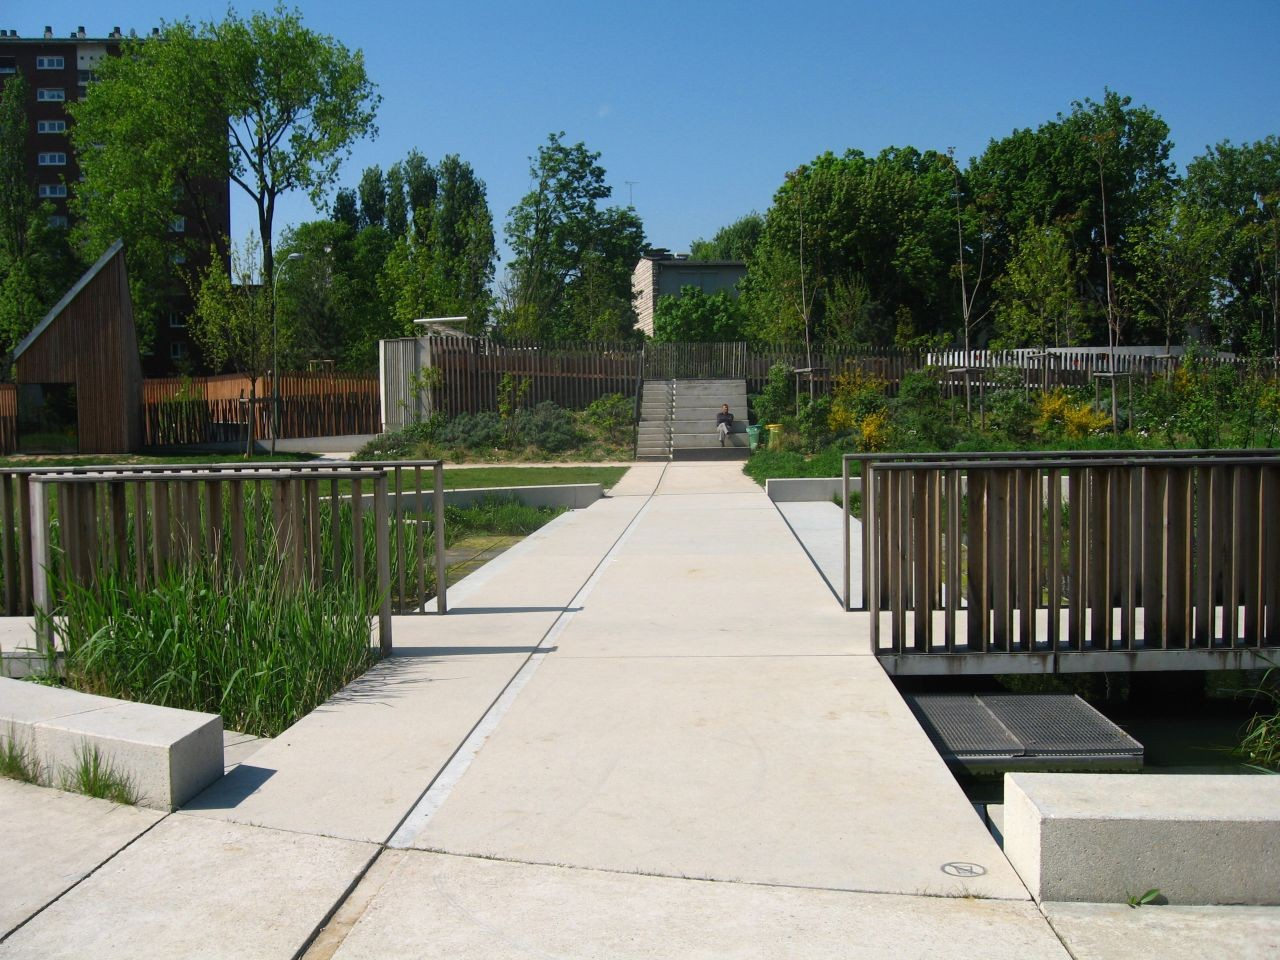 Jardin serge gainsbourg matthieu gelin david lafon for Architecte jardin